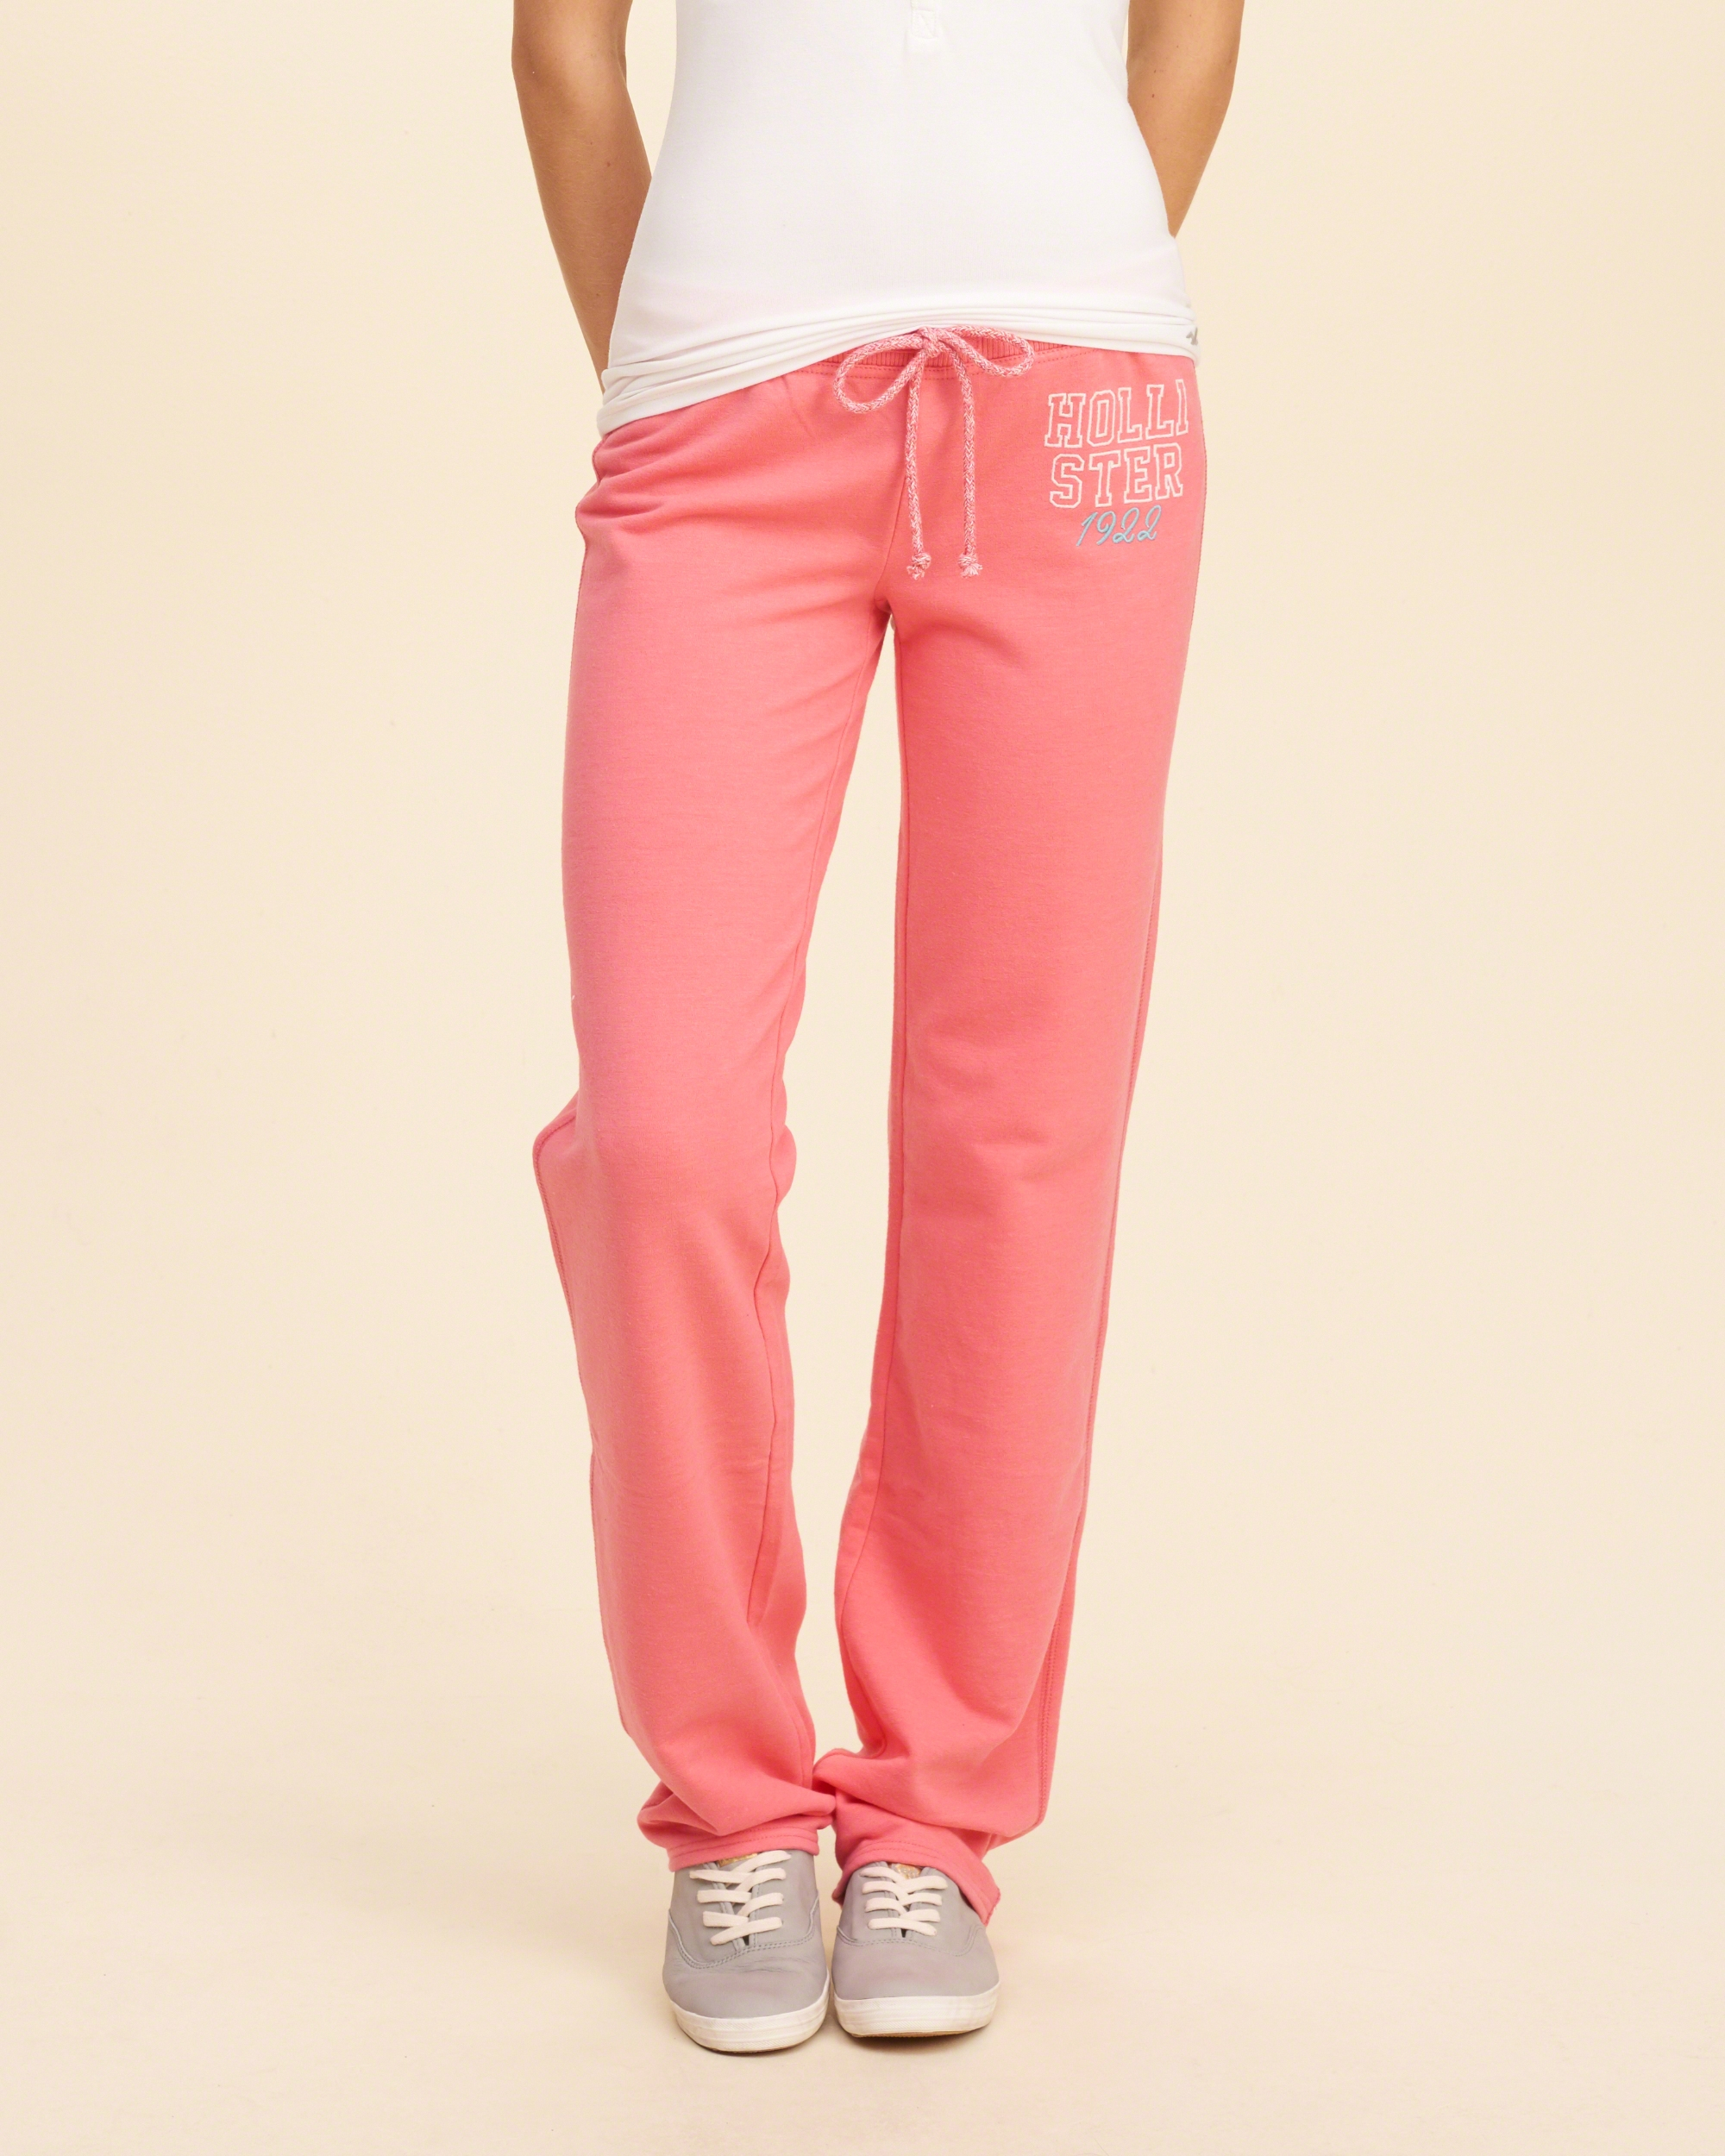 hollister skinny logo graphic sweatpants in pink lyst